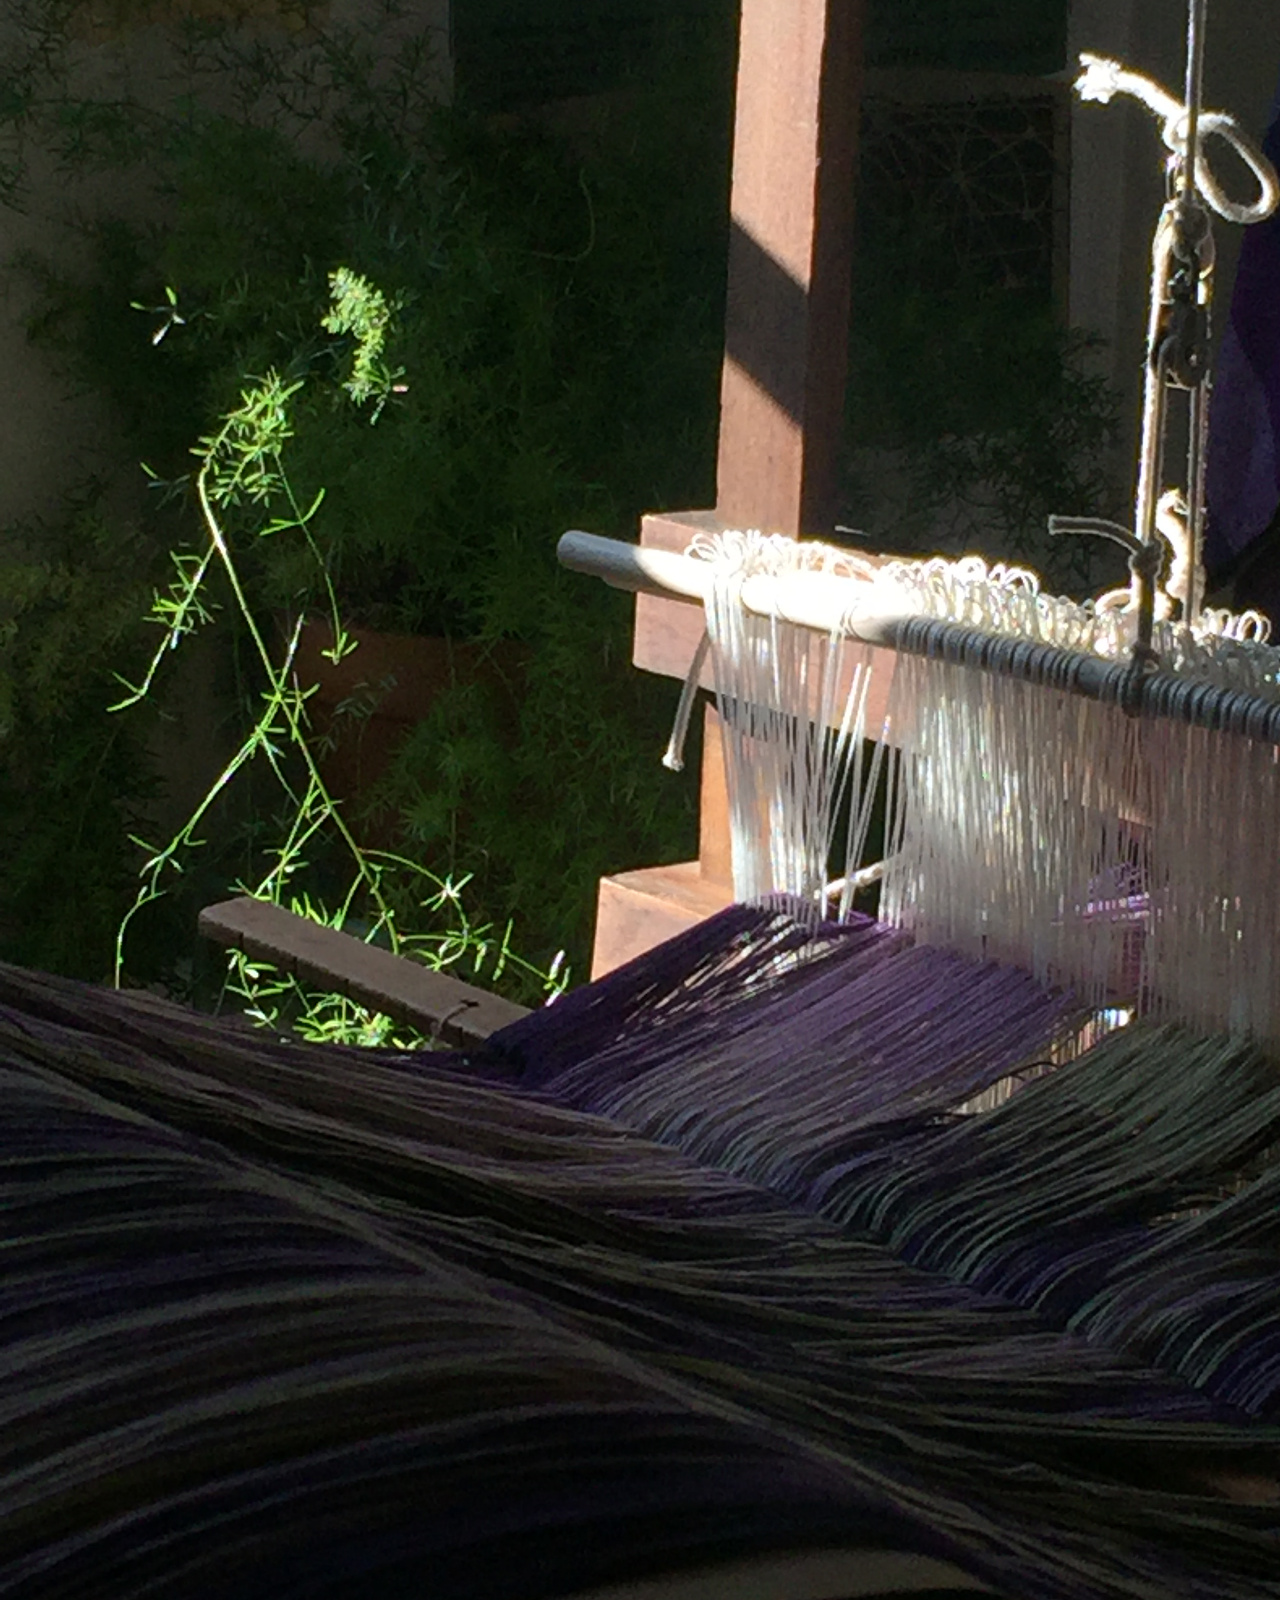 Setting up the loom for rugs